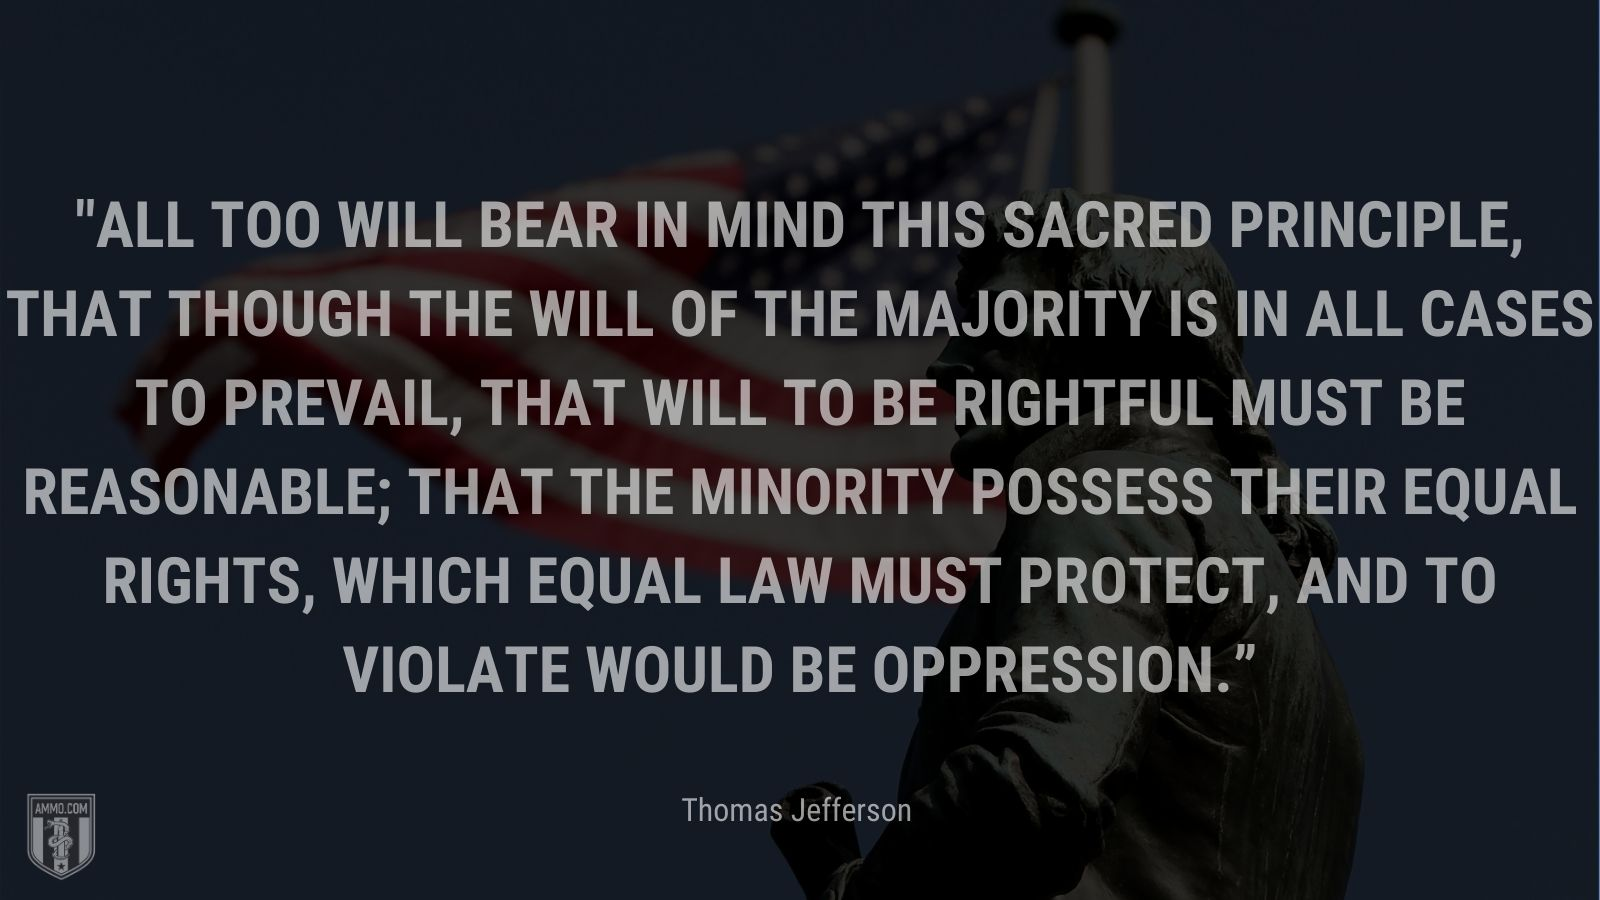 """""""All too will bear in mind this sacred principle, that though the will of the majority is in all cases to prevail, that will to be rightful must be reasonable; that the minority possess their equal rights, which equal law must protect, and to violate would be oppression."""" - Thomas Jefferson"""